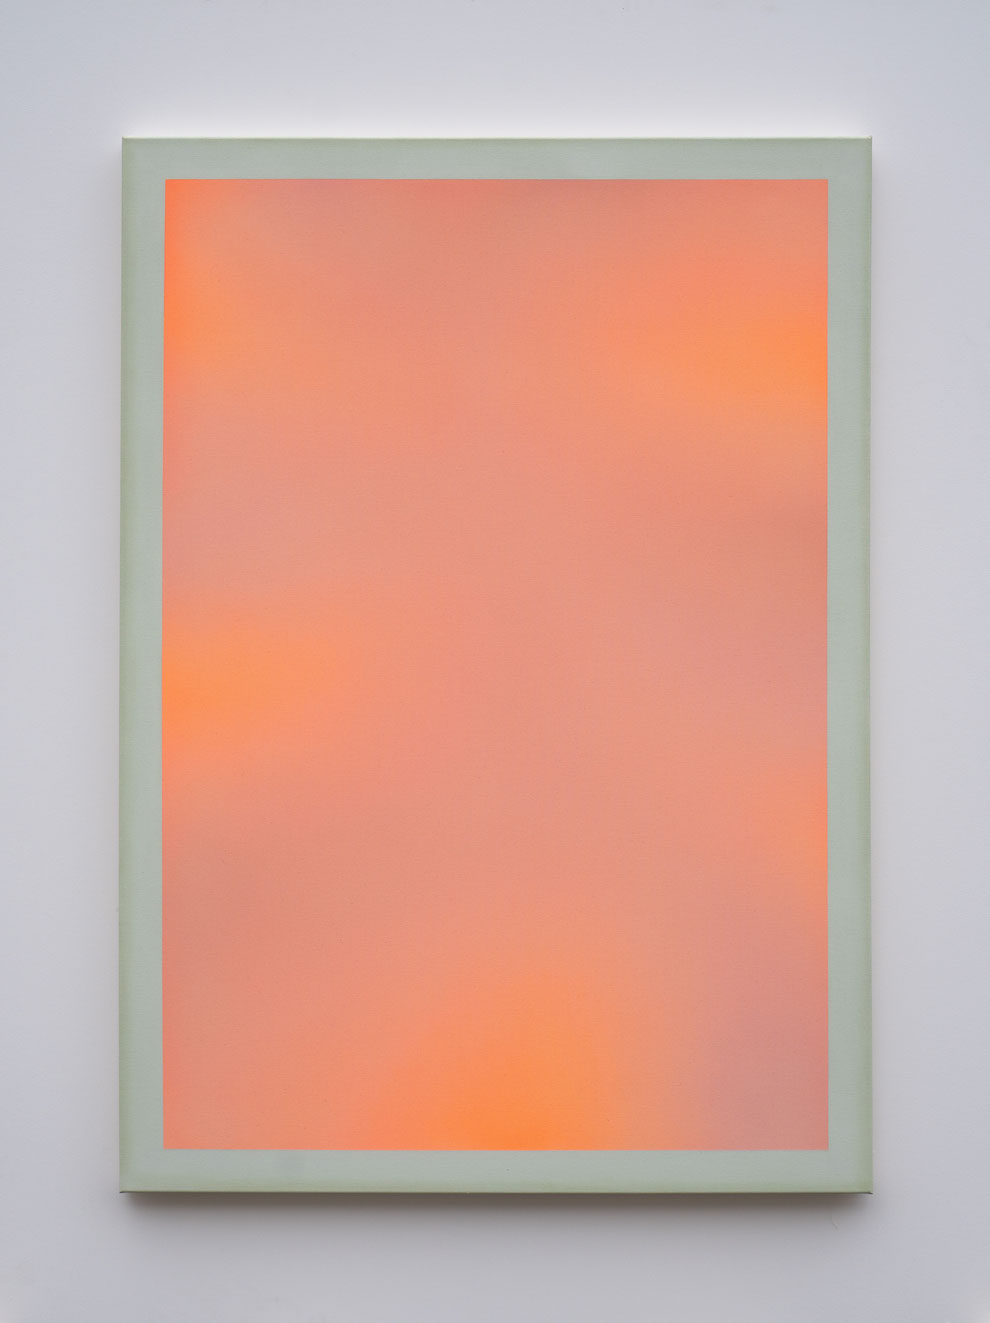 "Alina Birkner ""Untitled (Orange and Green)"" 2021, 170x120 cm"